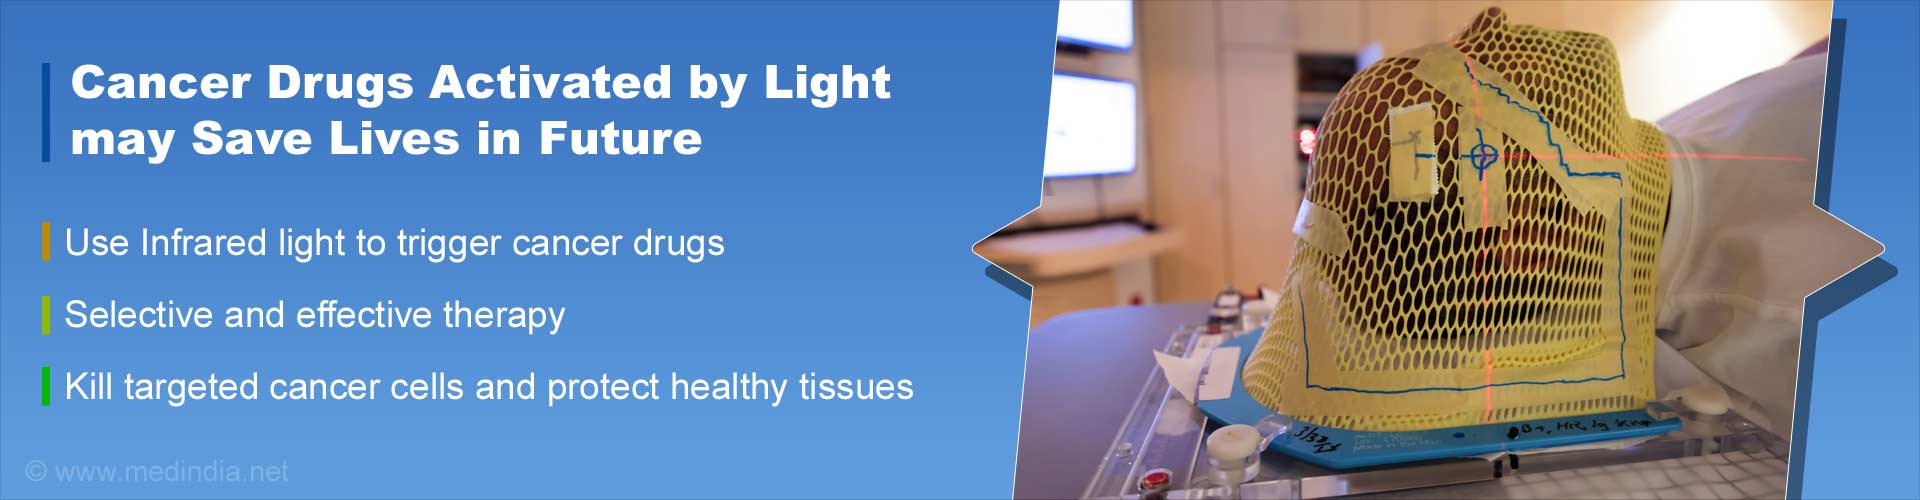 cancer drugs activated by light may save lives in future - use infrared light to trigger cancer drugs - selective and effective therapy - kill targeted cancer cells ans protect healthy tissues